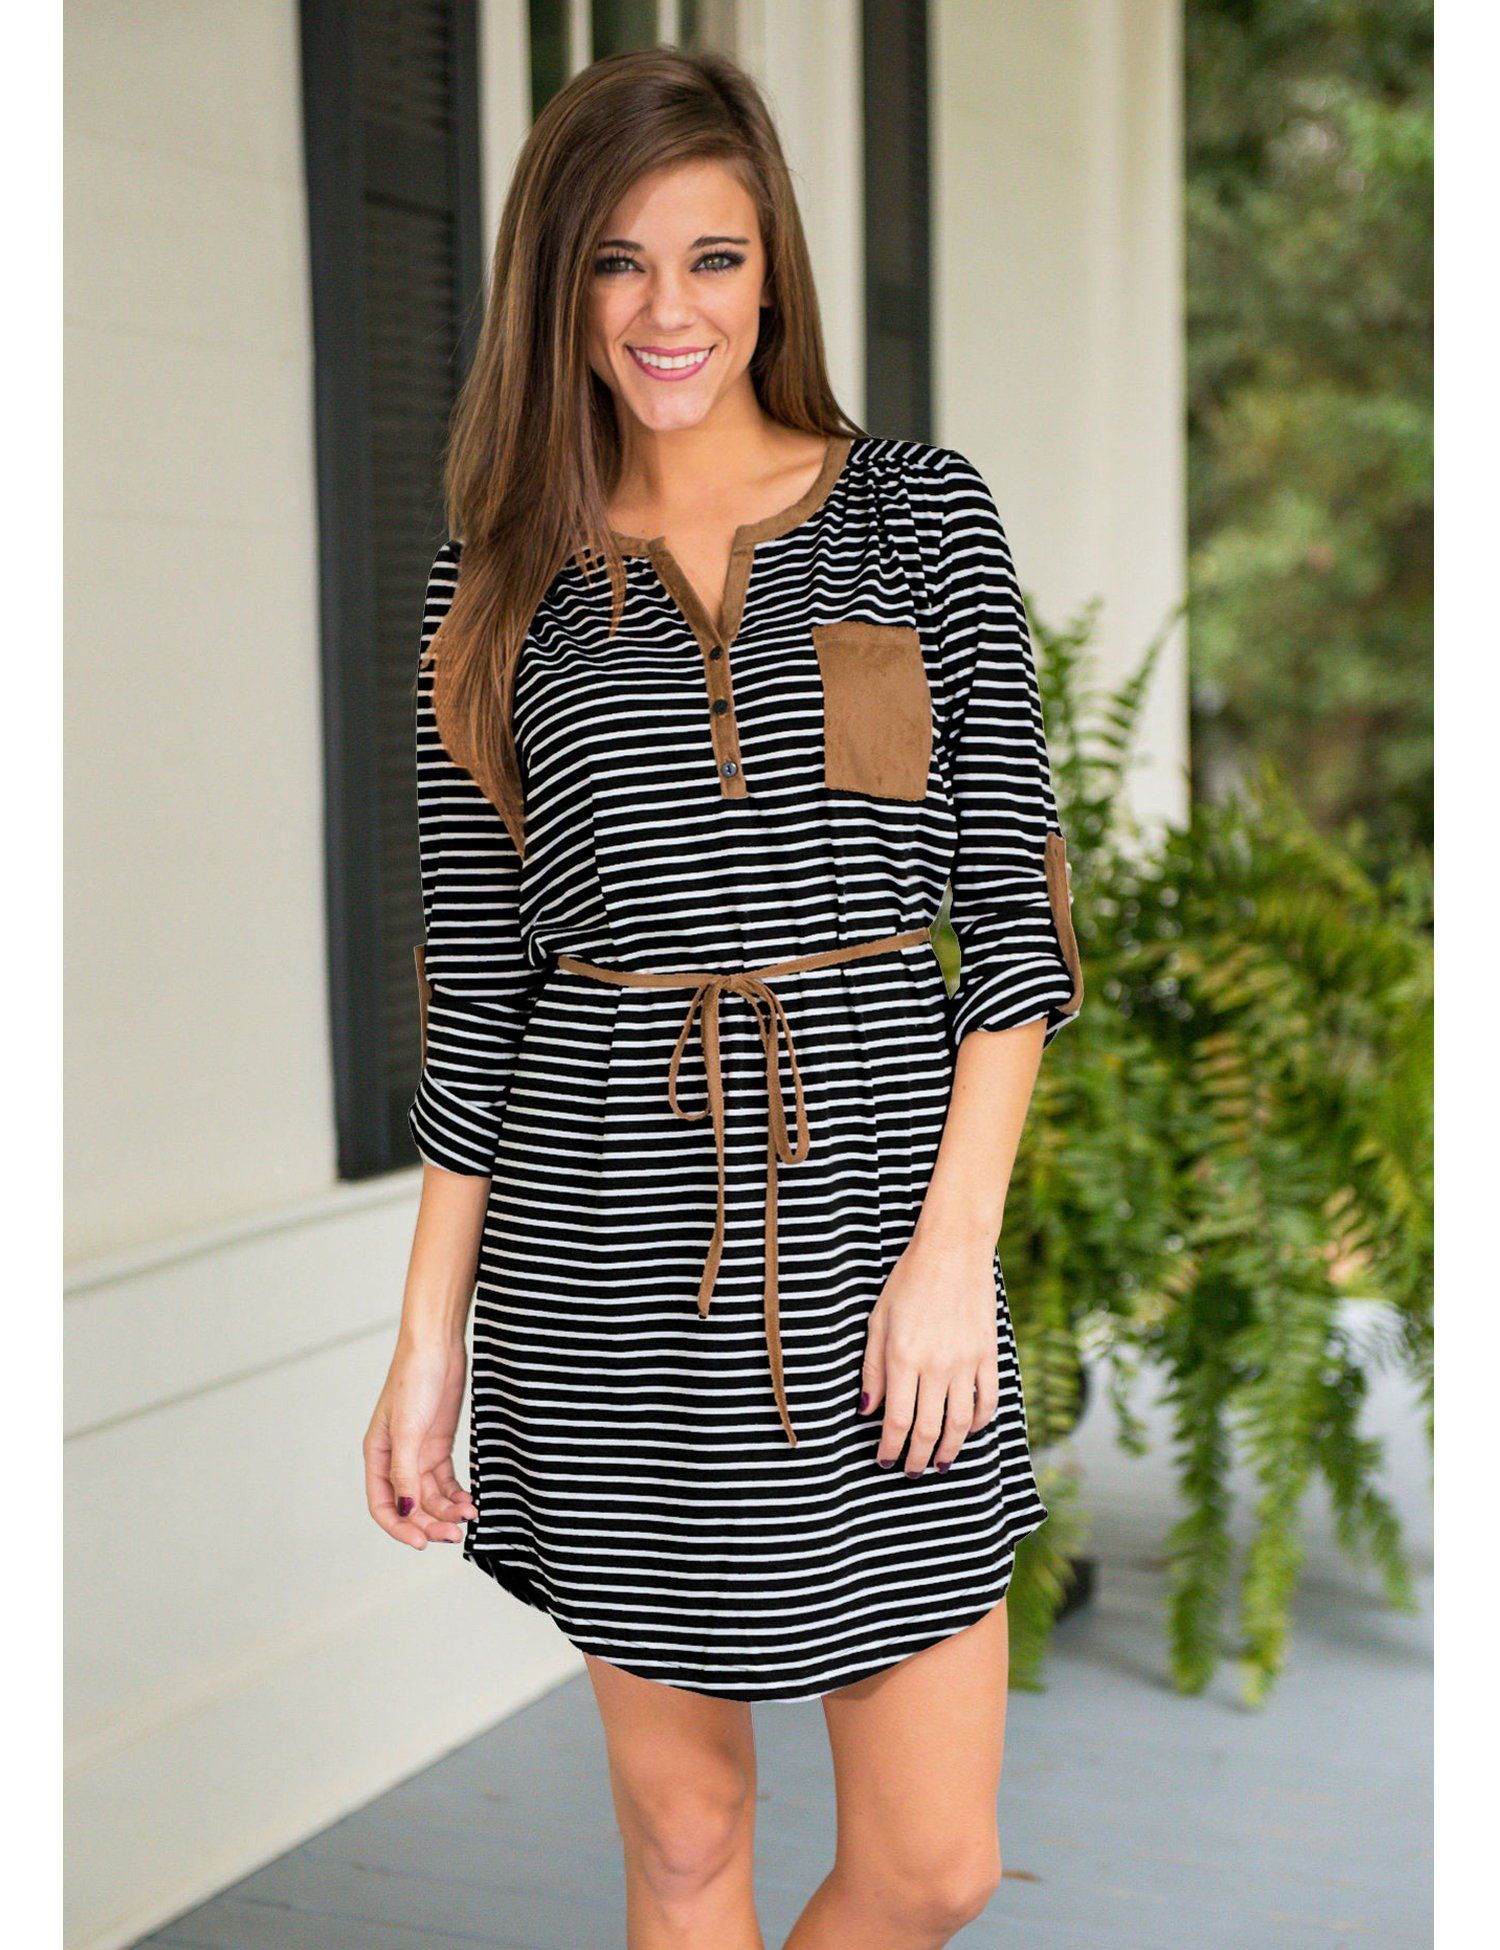 Roaays M Womens Tunic Striped Loose Cotton Tshirt Dress Find Out More About The Great Product At T Mini Dress Casual Striped Casual Dresses Short Mini Dress [ 1950 x 1500 Pixel ]